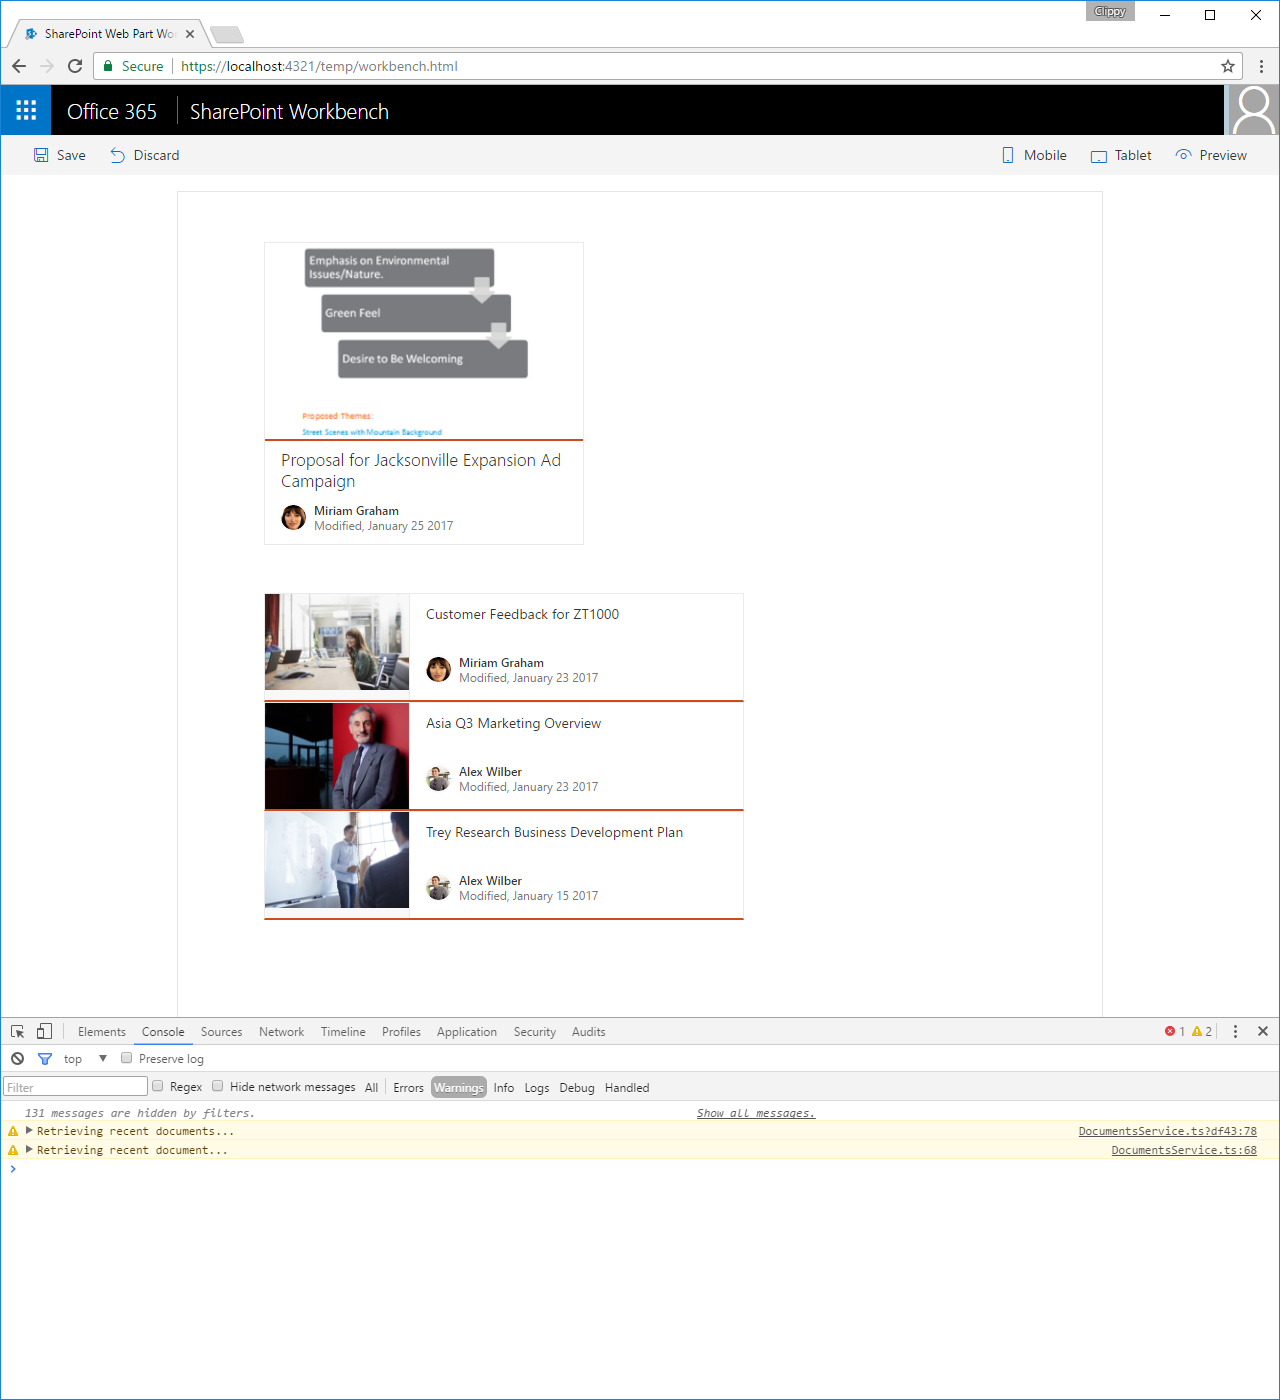 Share data between client-side web parts | Microsoft Docs